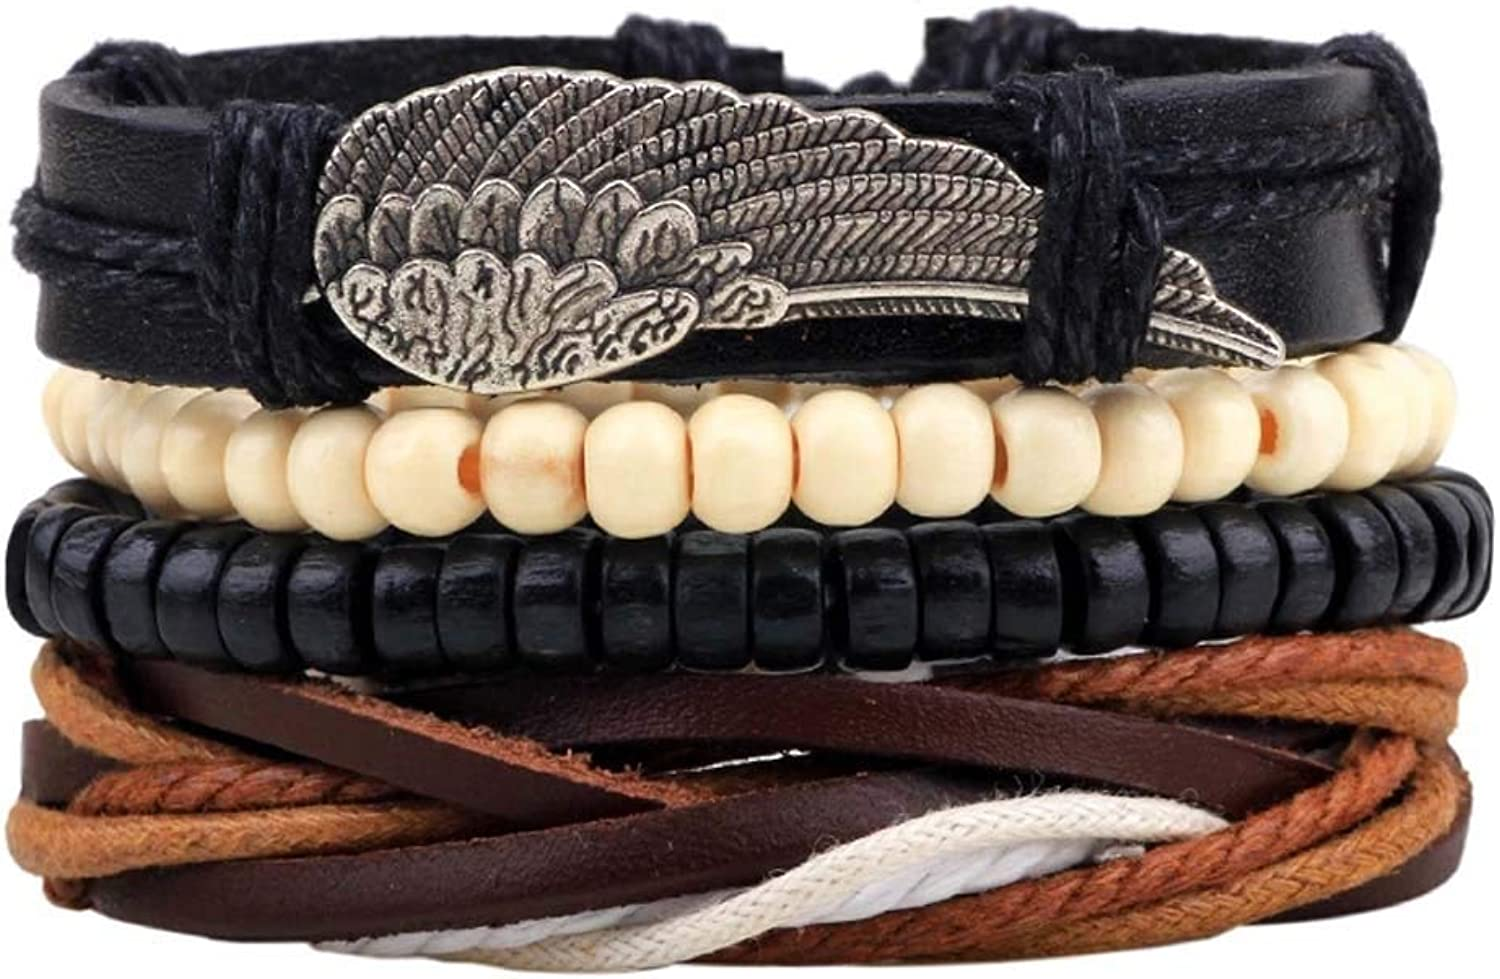 Zicue Stylish Charming Bracelet Exquisite Ornaments Unisex PU Leather Hemp Cords Beaded Multi StrandsWrap Adjustable Bracelets Set (7.6 inches) ( color   10 )